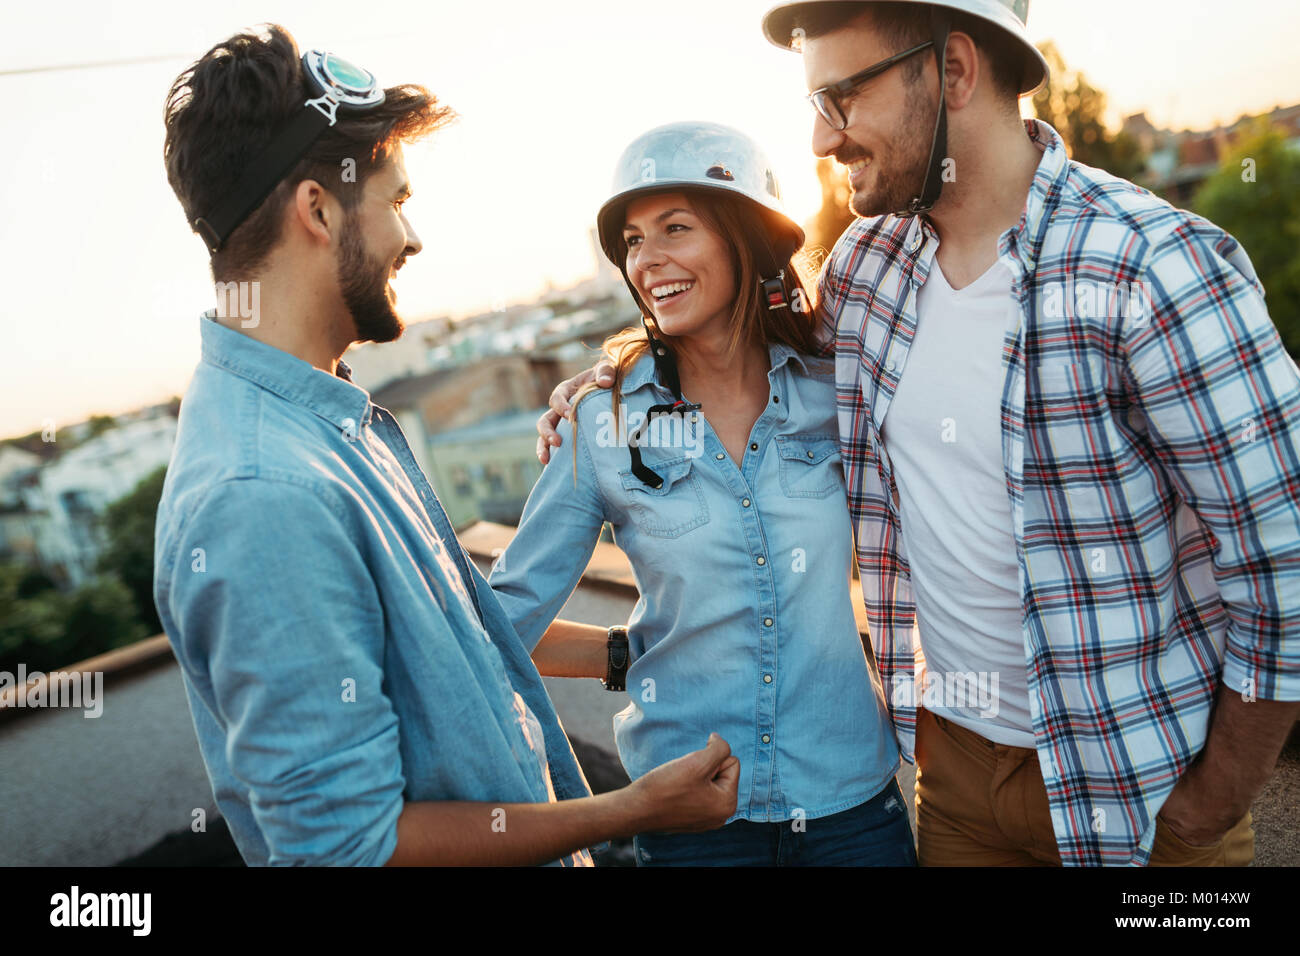 Happy friends laughing et smiling outdoors Photo Stock